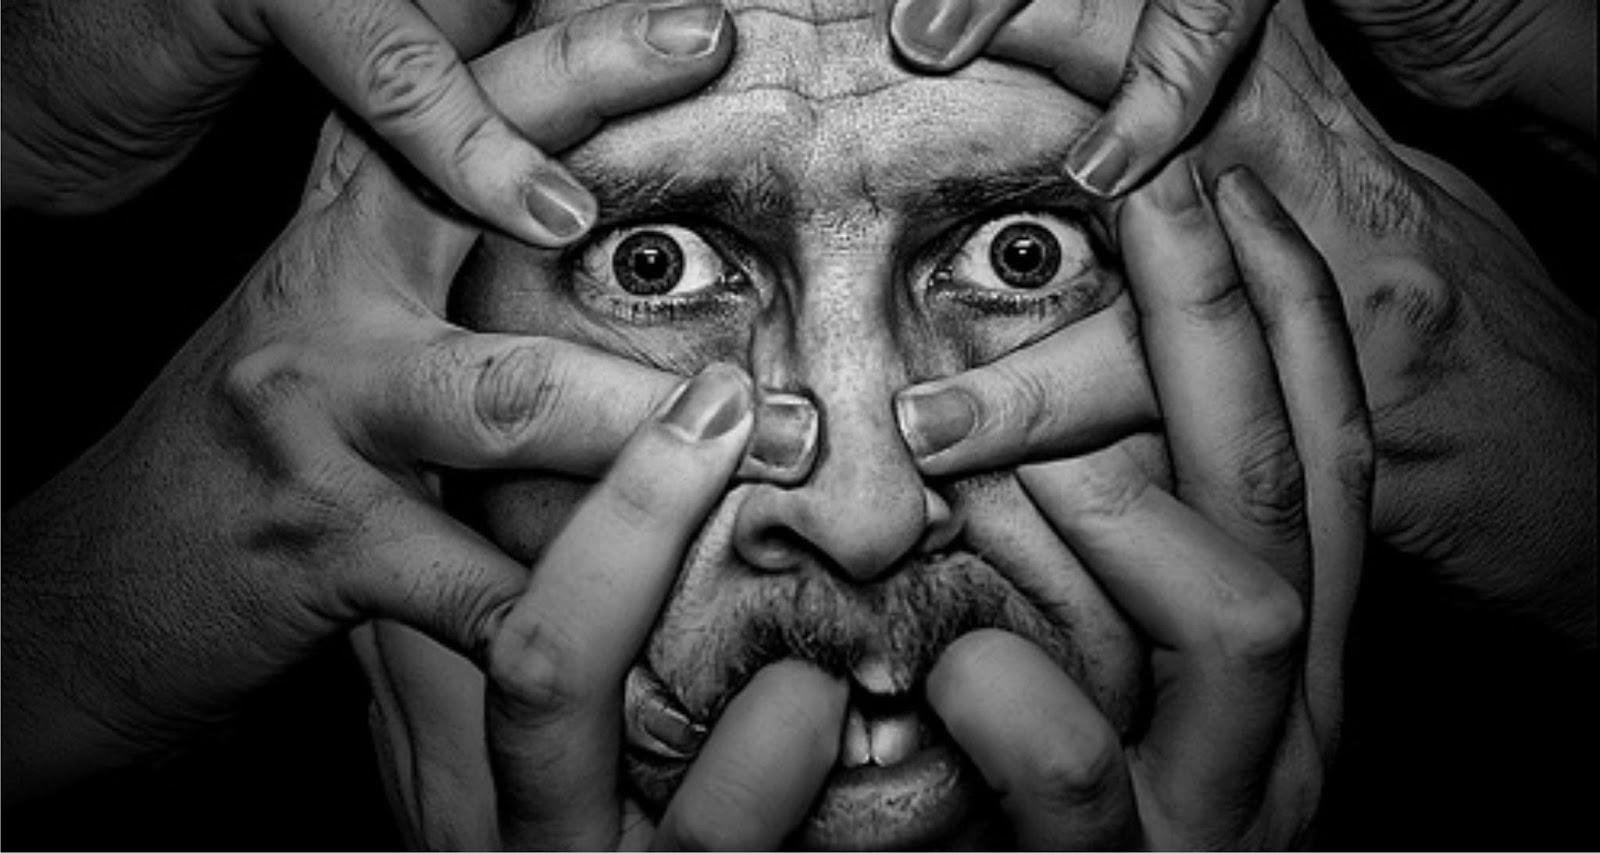 post psychiatric disorder Posttraumatic stress disorder (ptsd) is a mental disorder that can develop after a person is exposed to a traumatic event, such as sexual assault, warfare, traffic collisions, or other threats on a person's life.